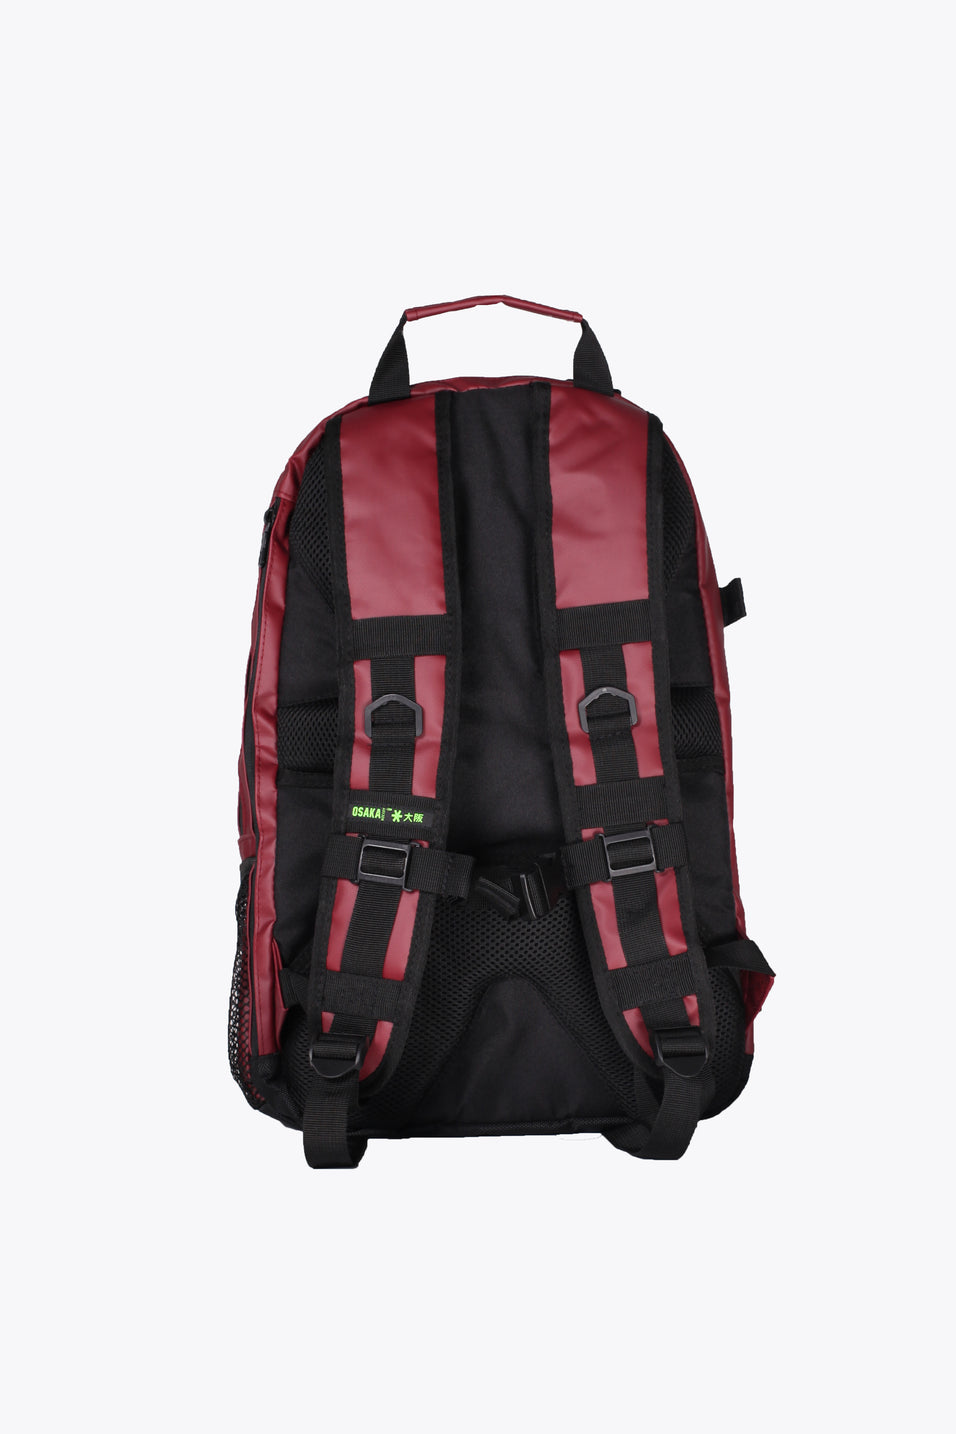 SP Large Backpack - Maroon / Black